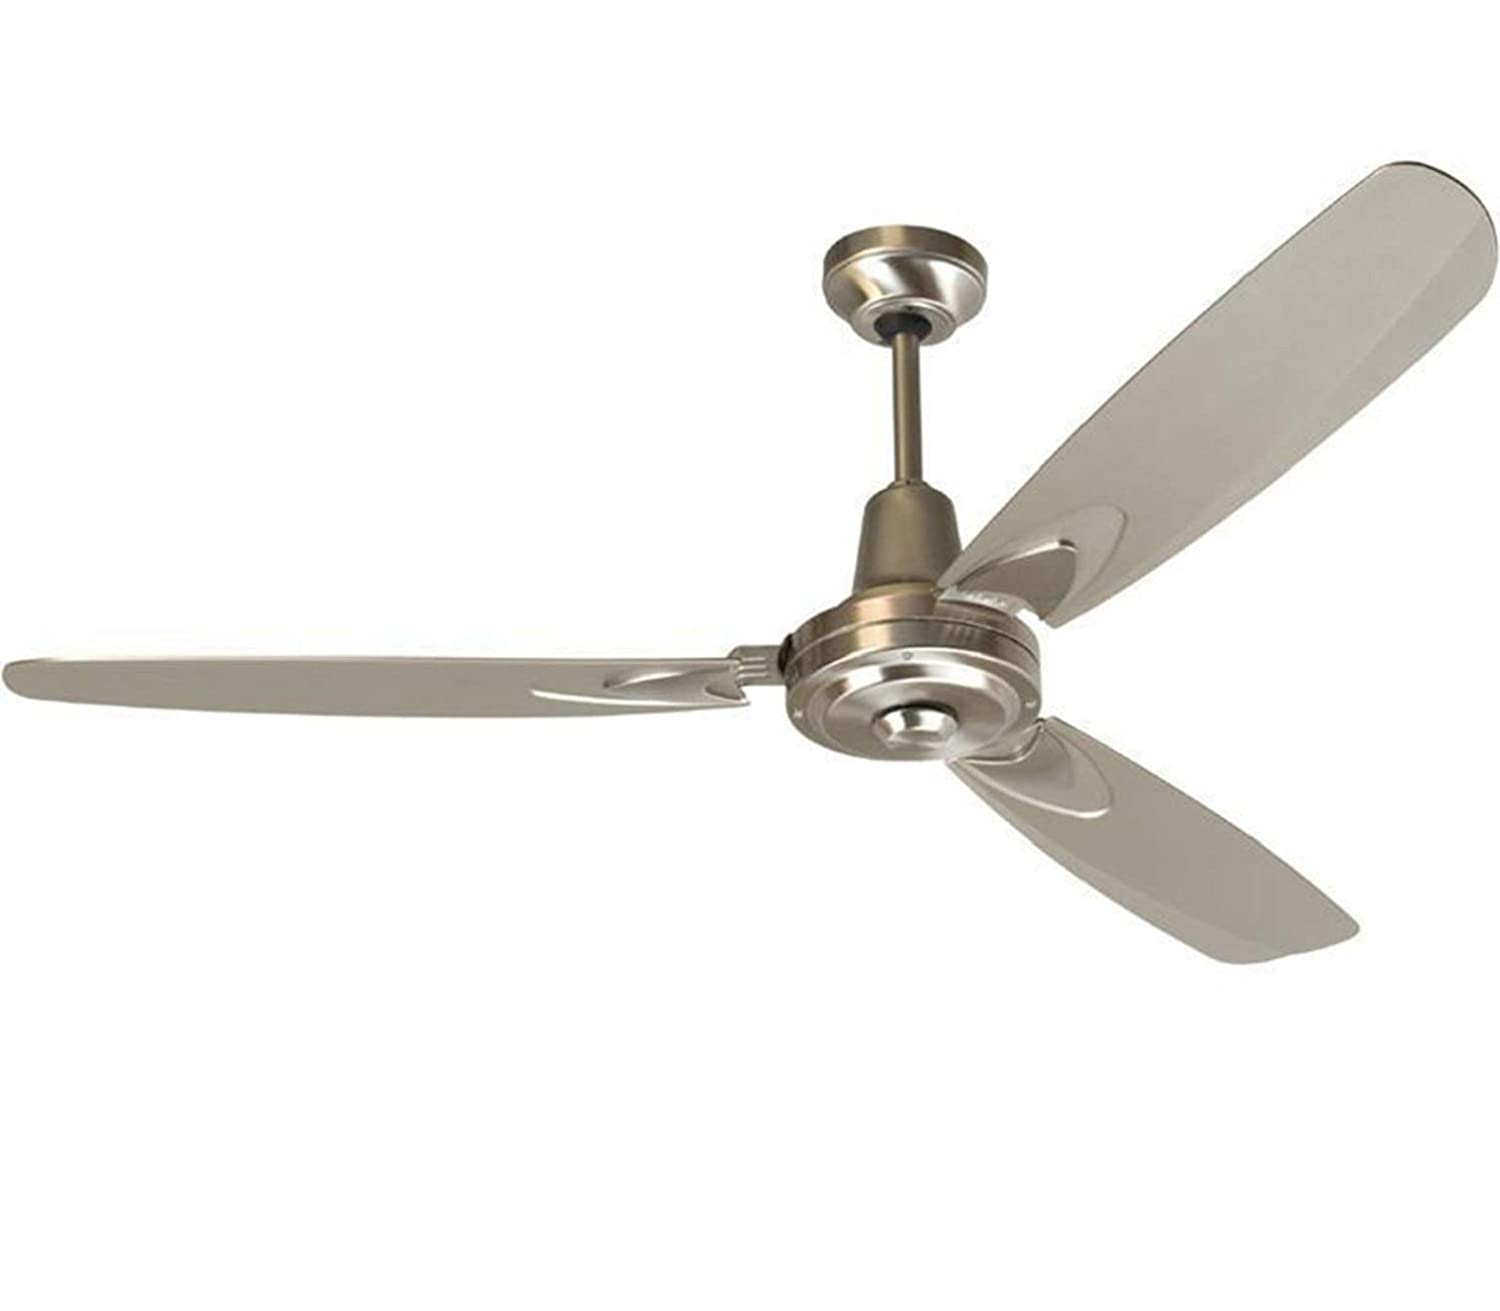 Craftmade 3 Blade Ceiling Fan Without Light VE58FB3 Velocity Black ...